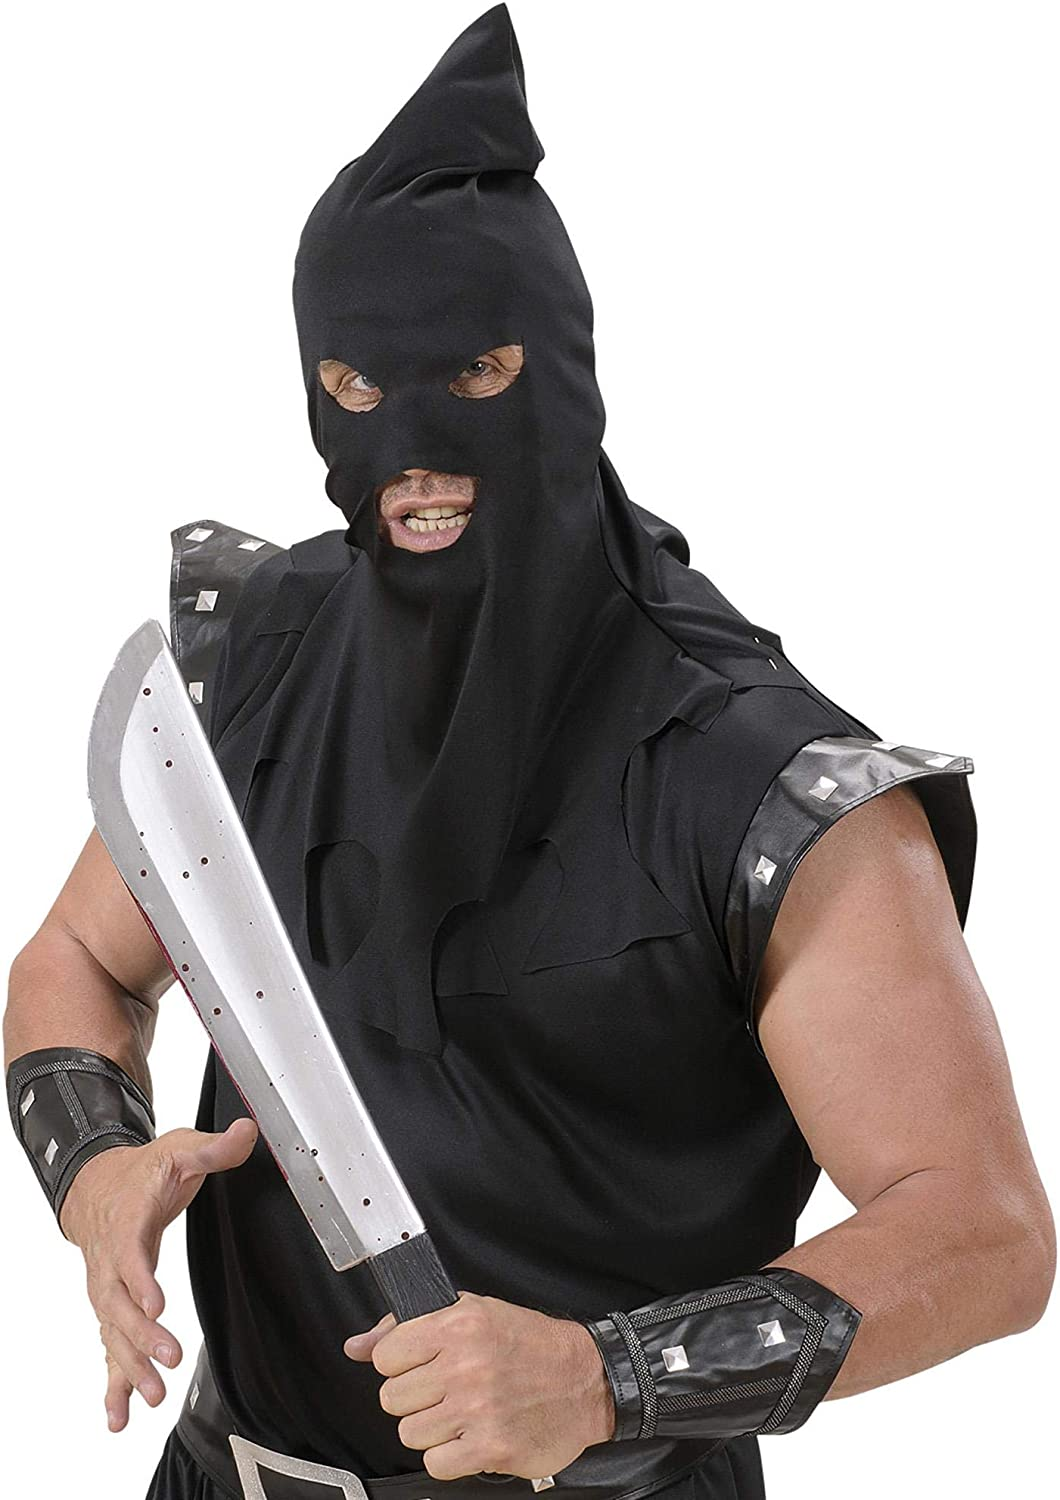 Bloody Machetes 54cm Halloween Novelty Toy Weapons /& Armour For Fancy Dress